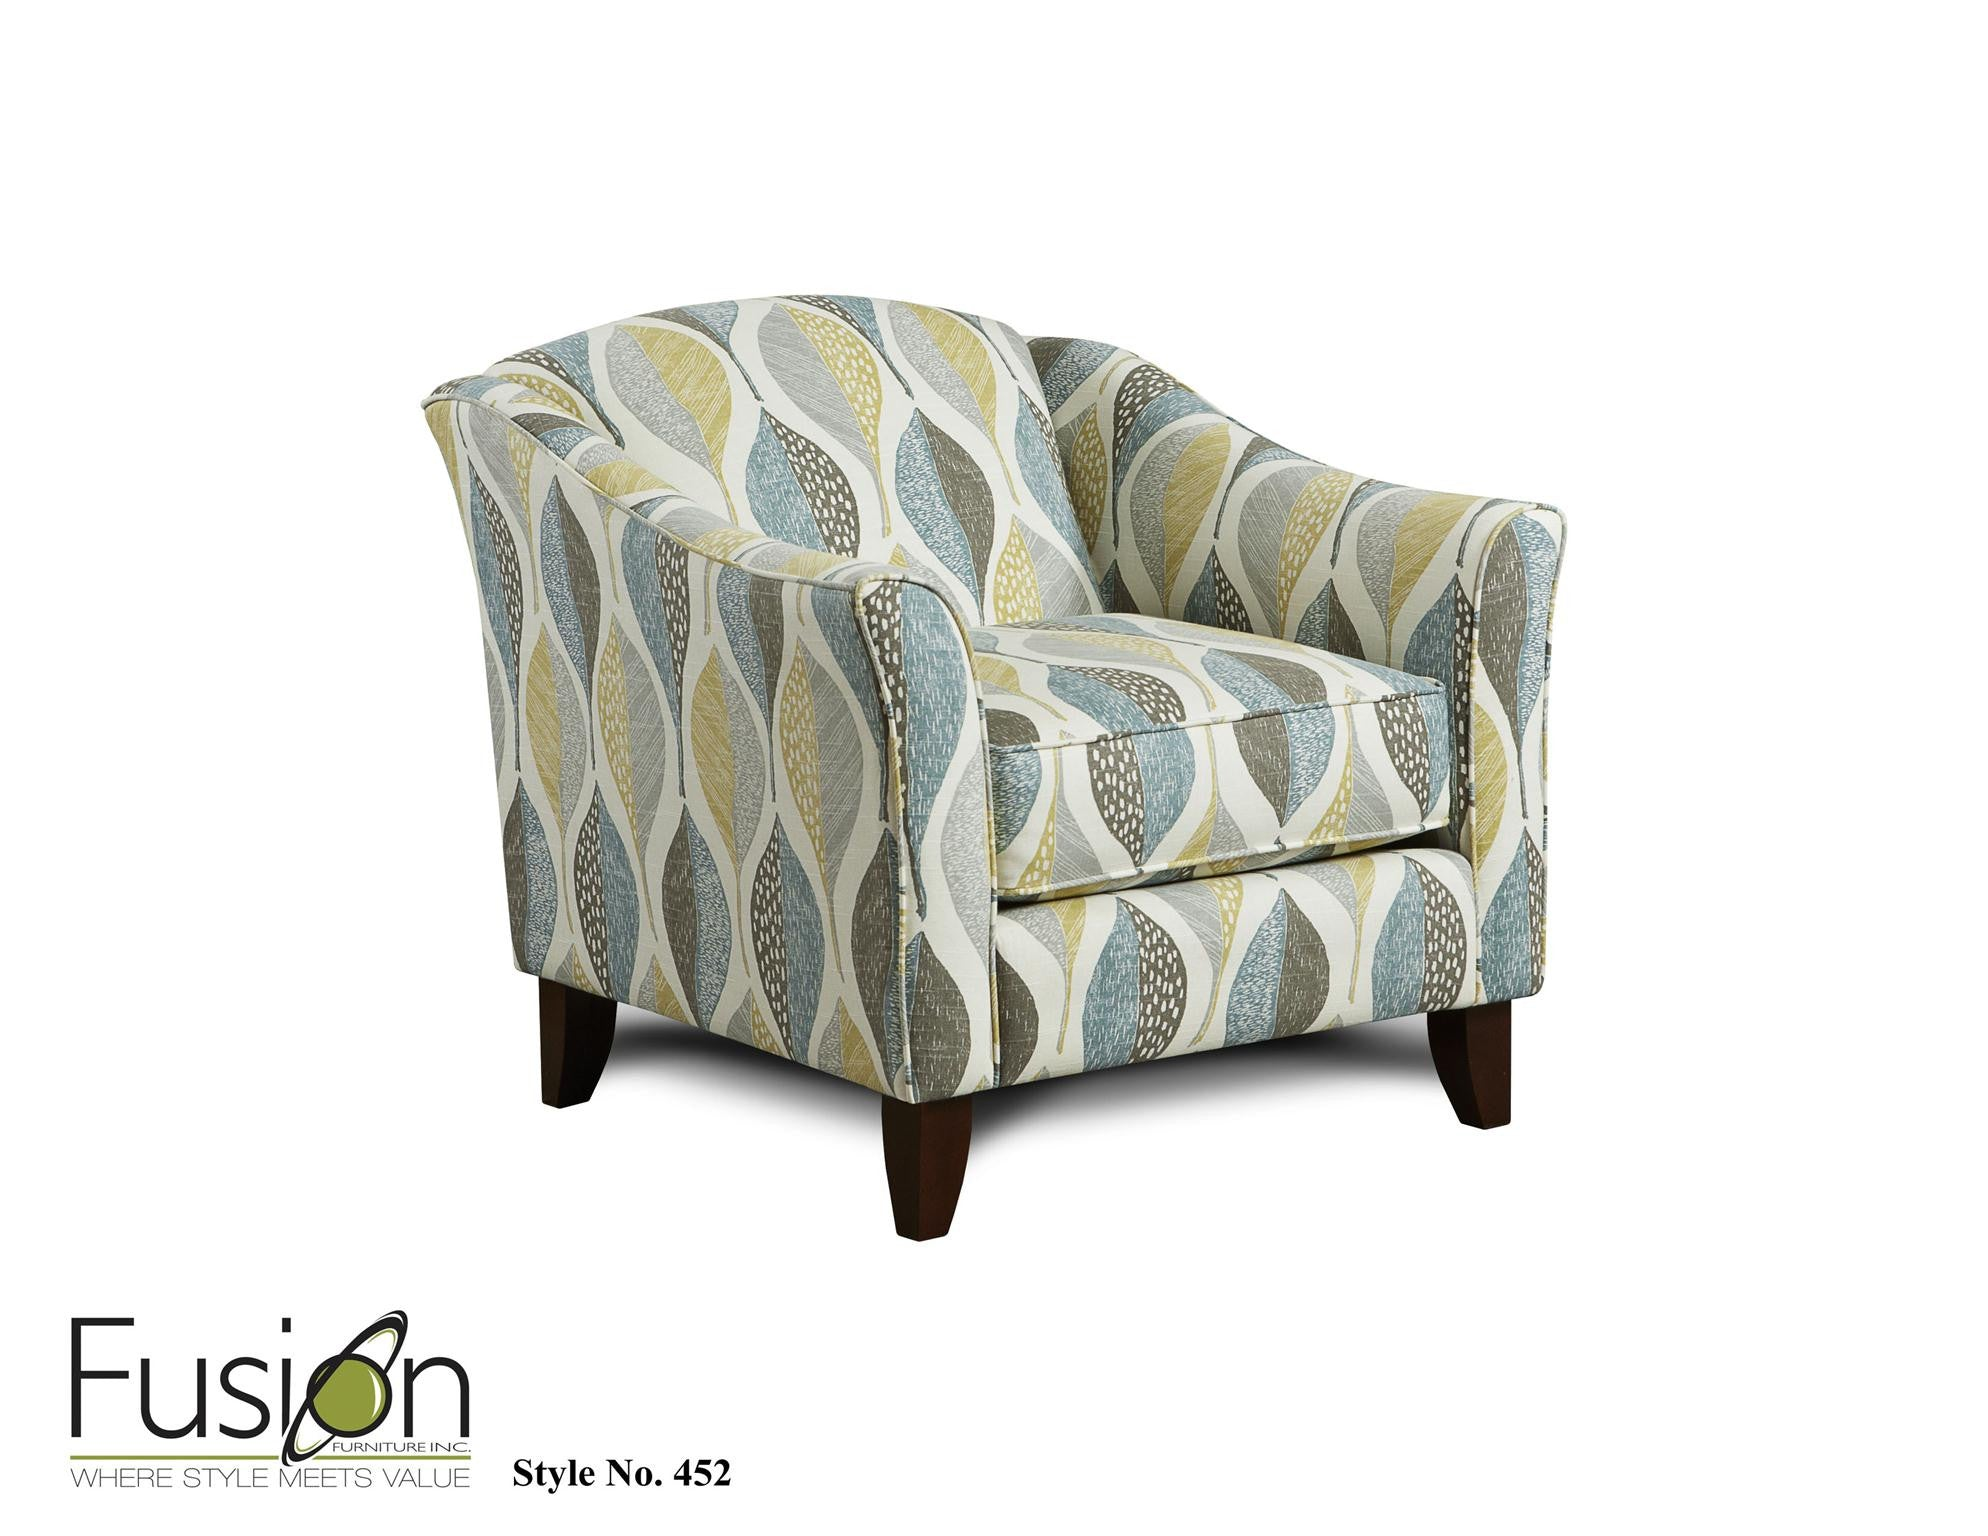 Fusion Decade Aqua Sofa and Loveseat , Stationary sofa and loveseat - Fusion Furniture. Inc., My Furniture Place - 3